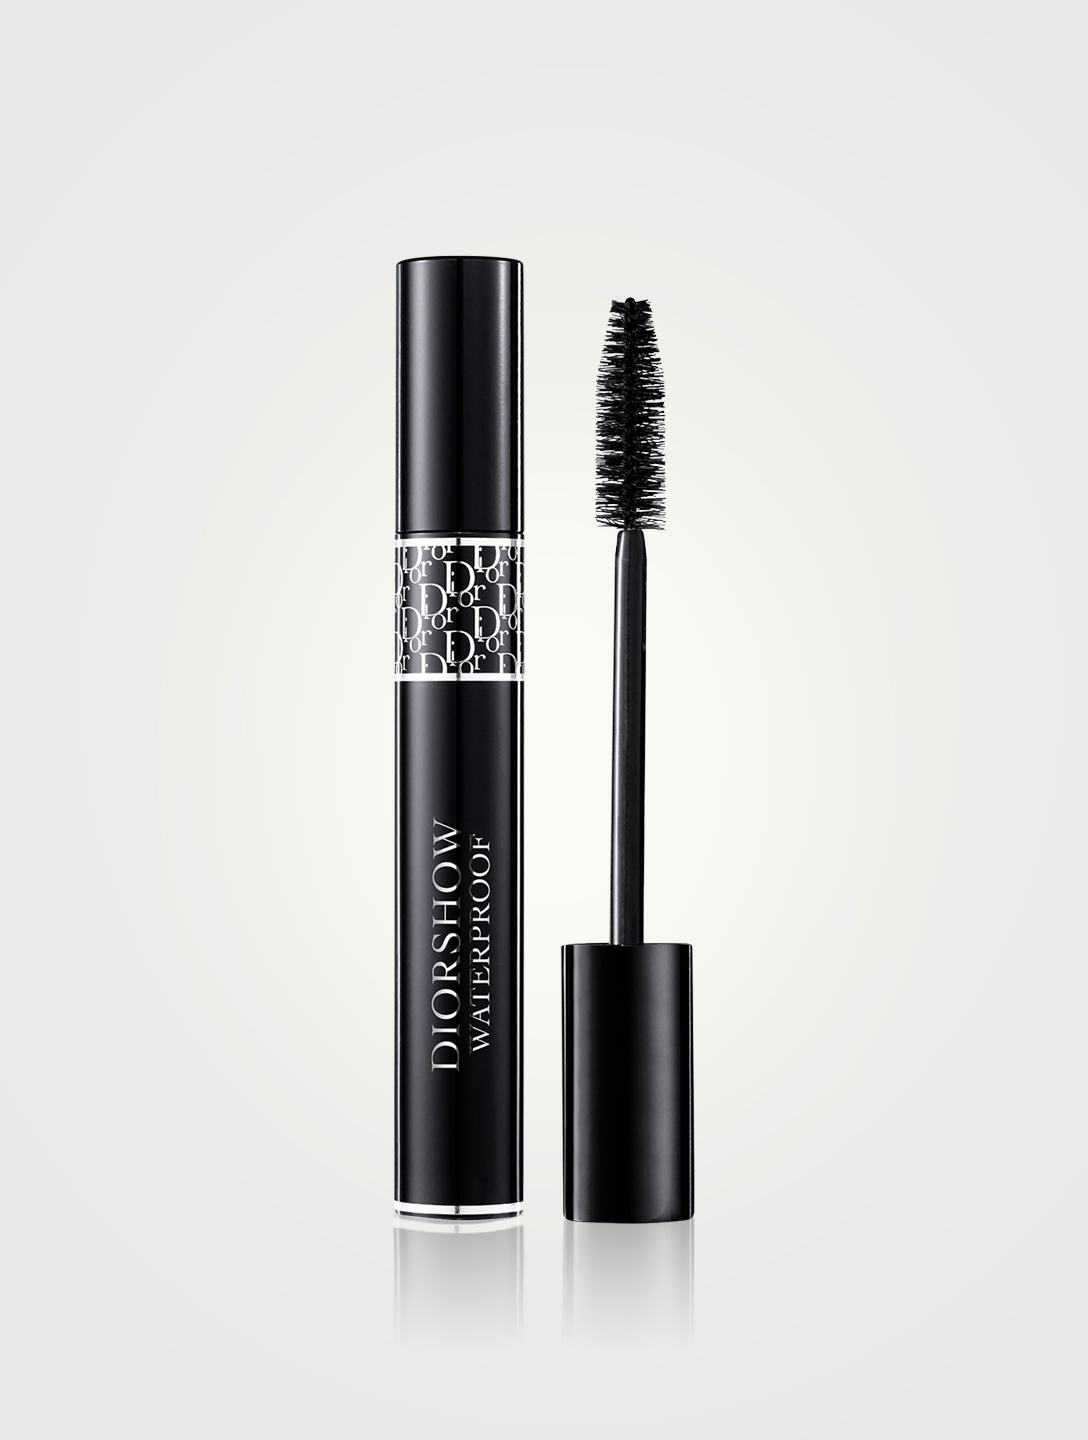 DIOR Diorshow Waterproof Backstage Mascara Beauty Black